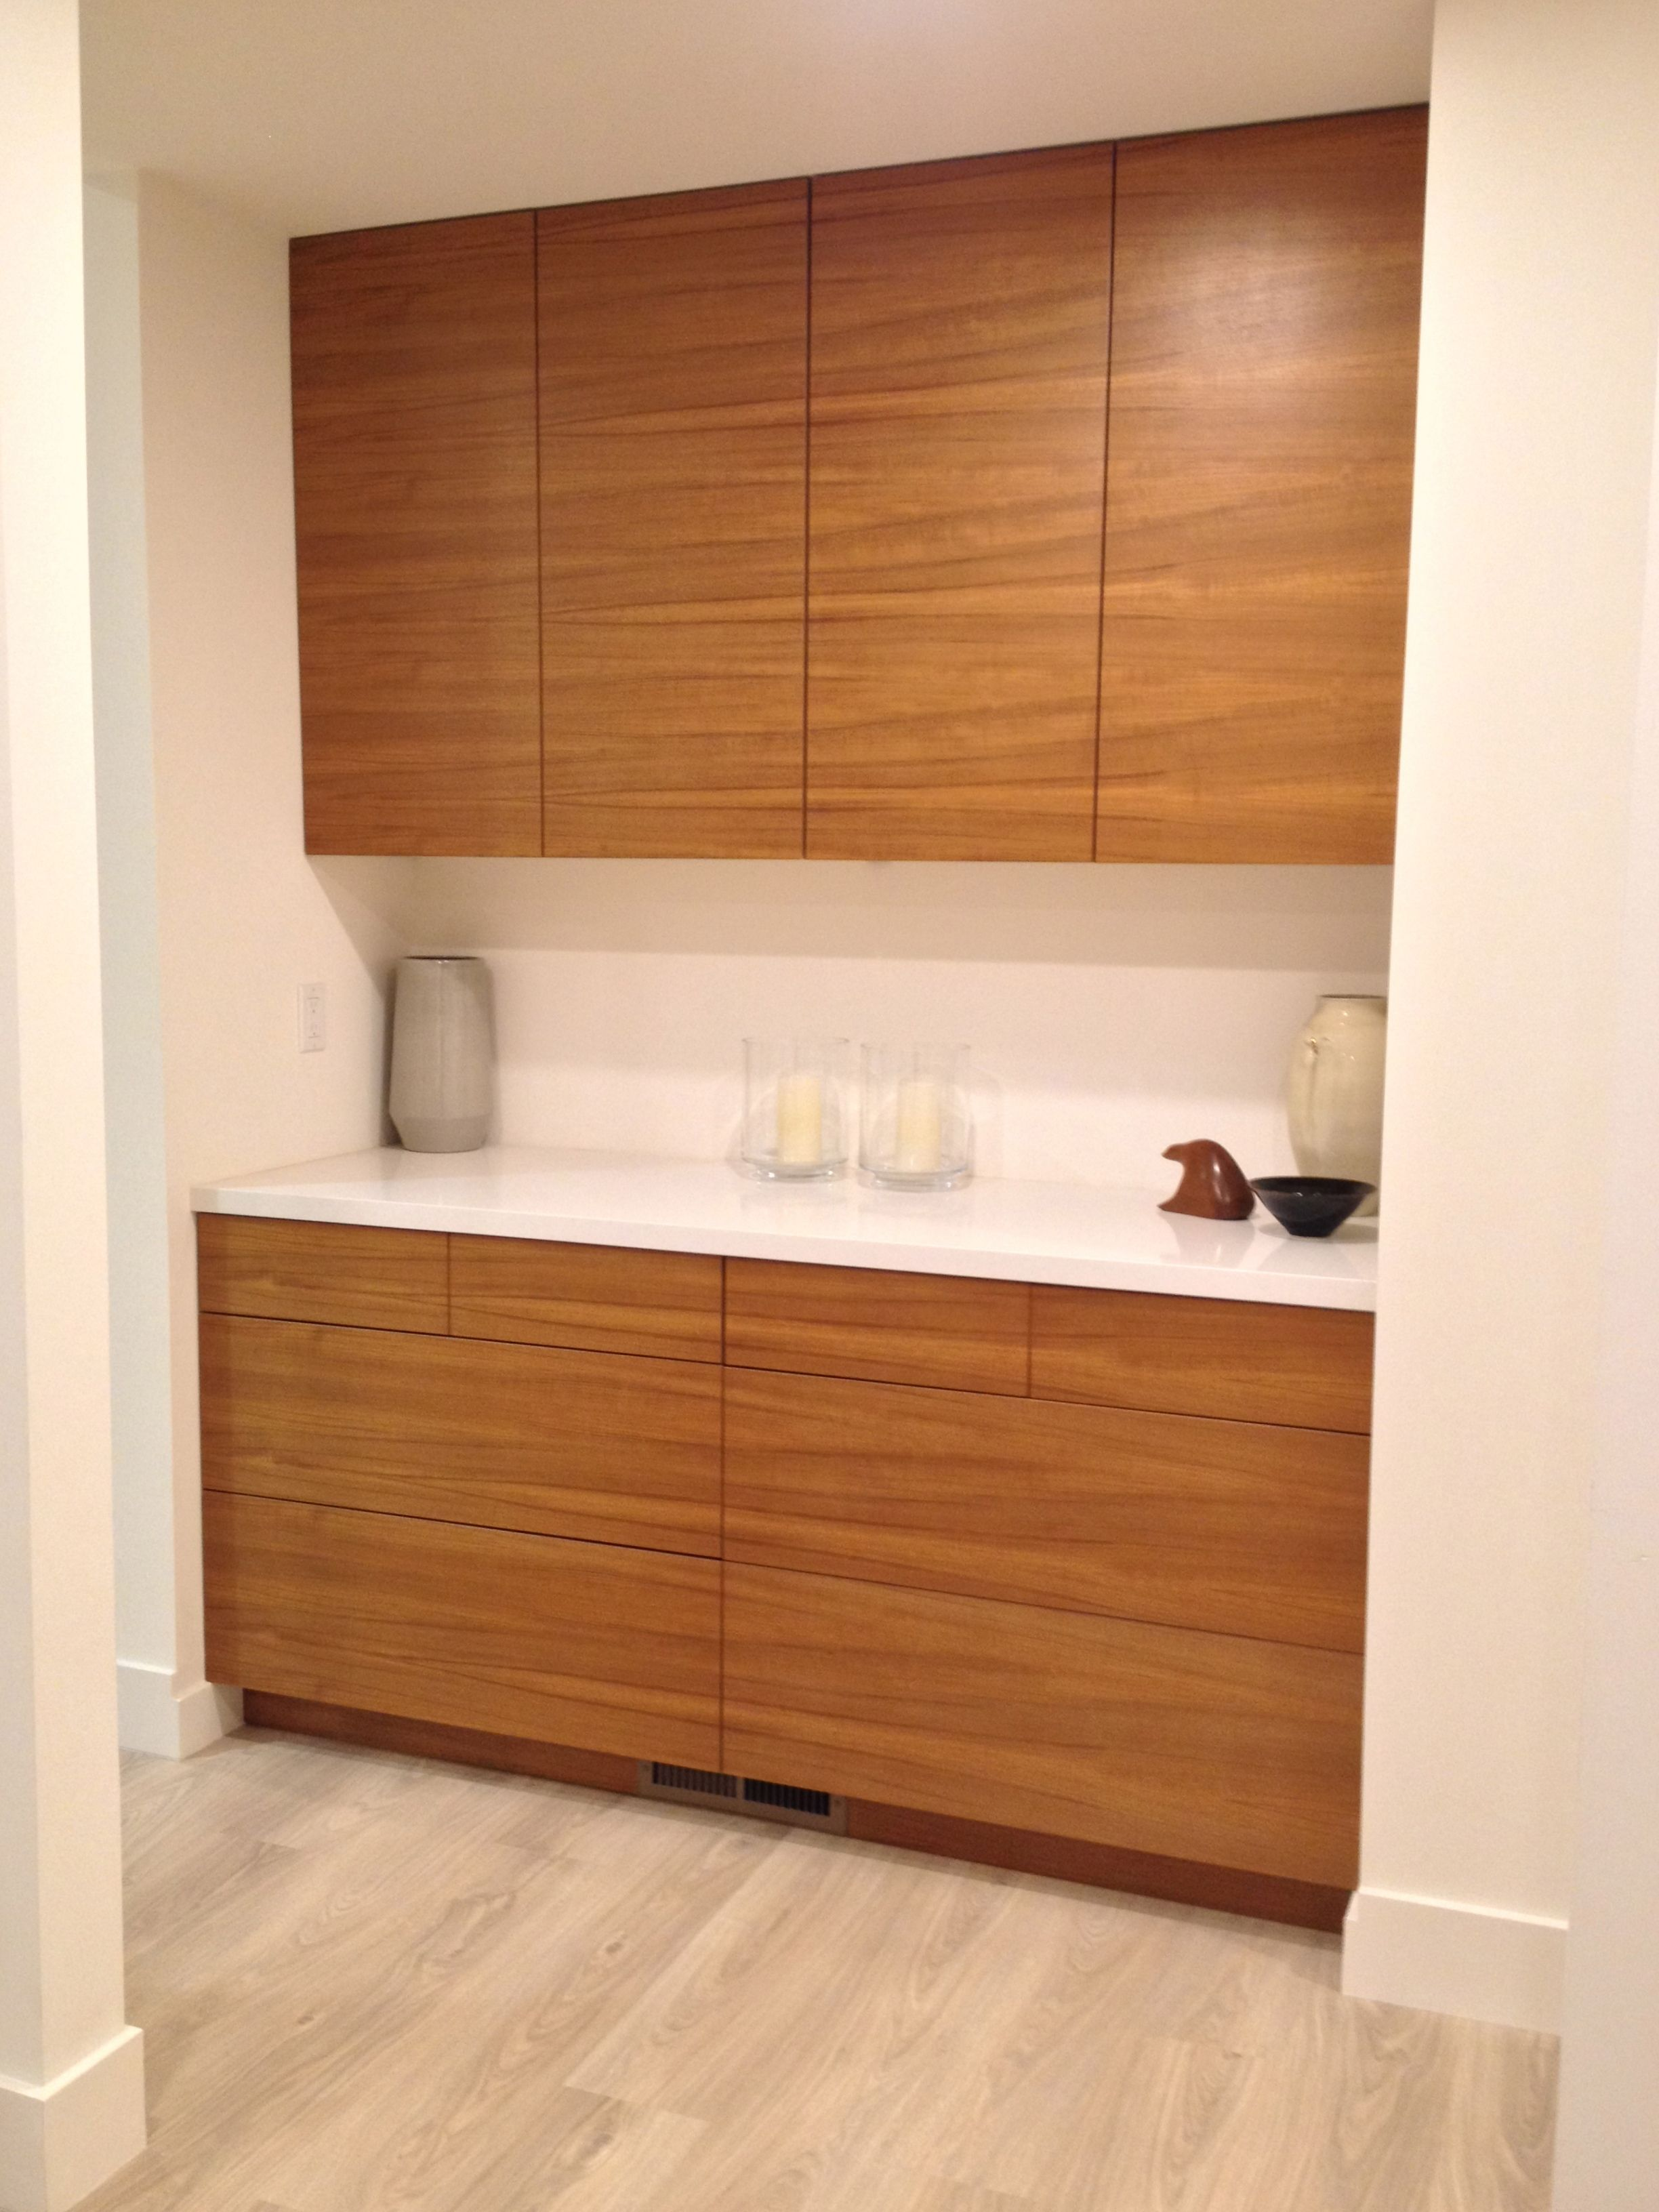 Ikea Kitchen With Semihandmade Flatsawn Teak Fronts Kitchen